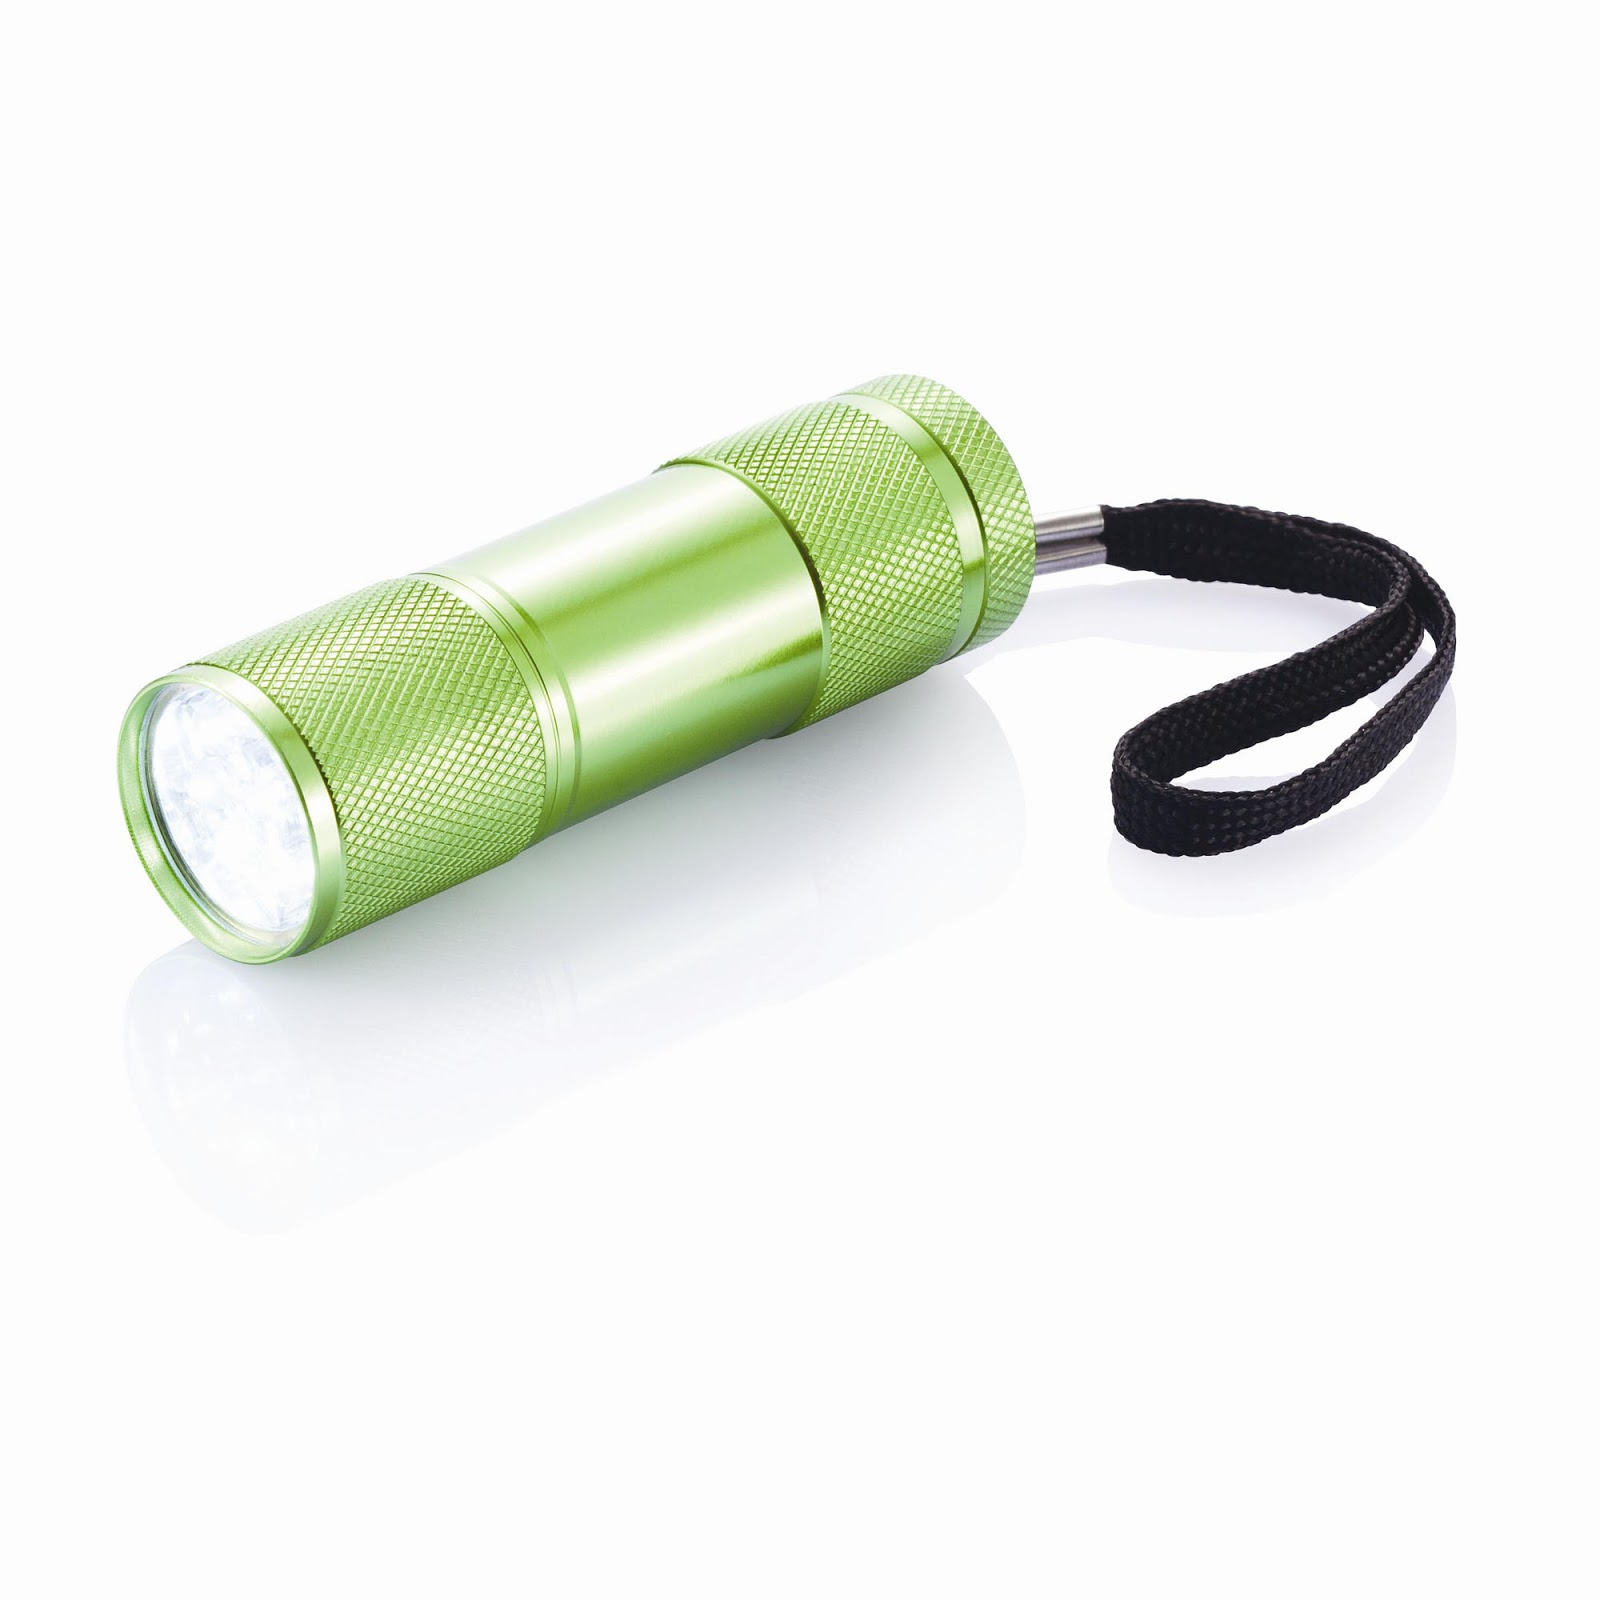 LED Aluminium Metal Torch